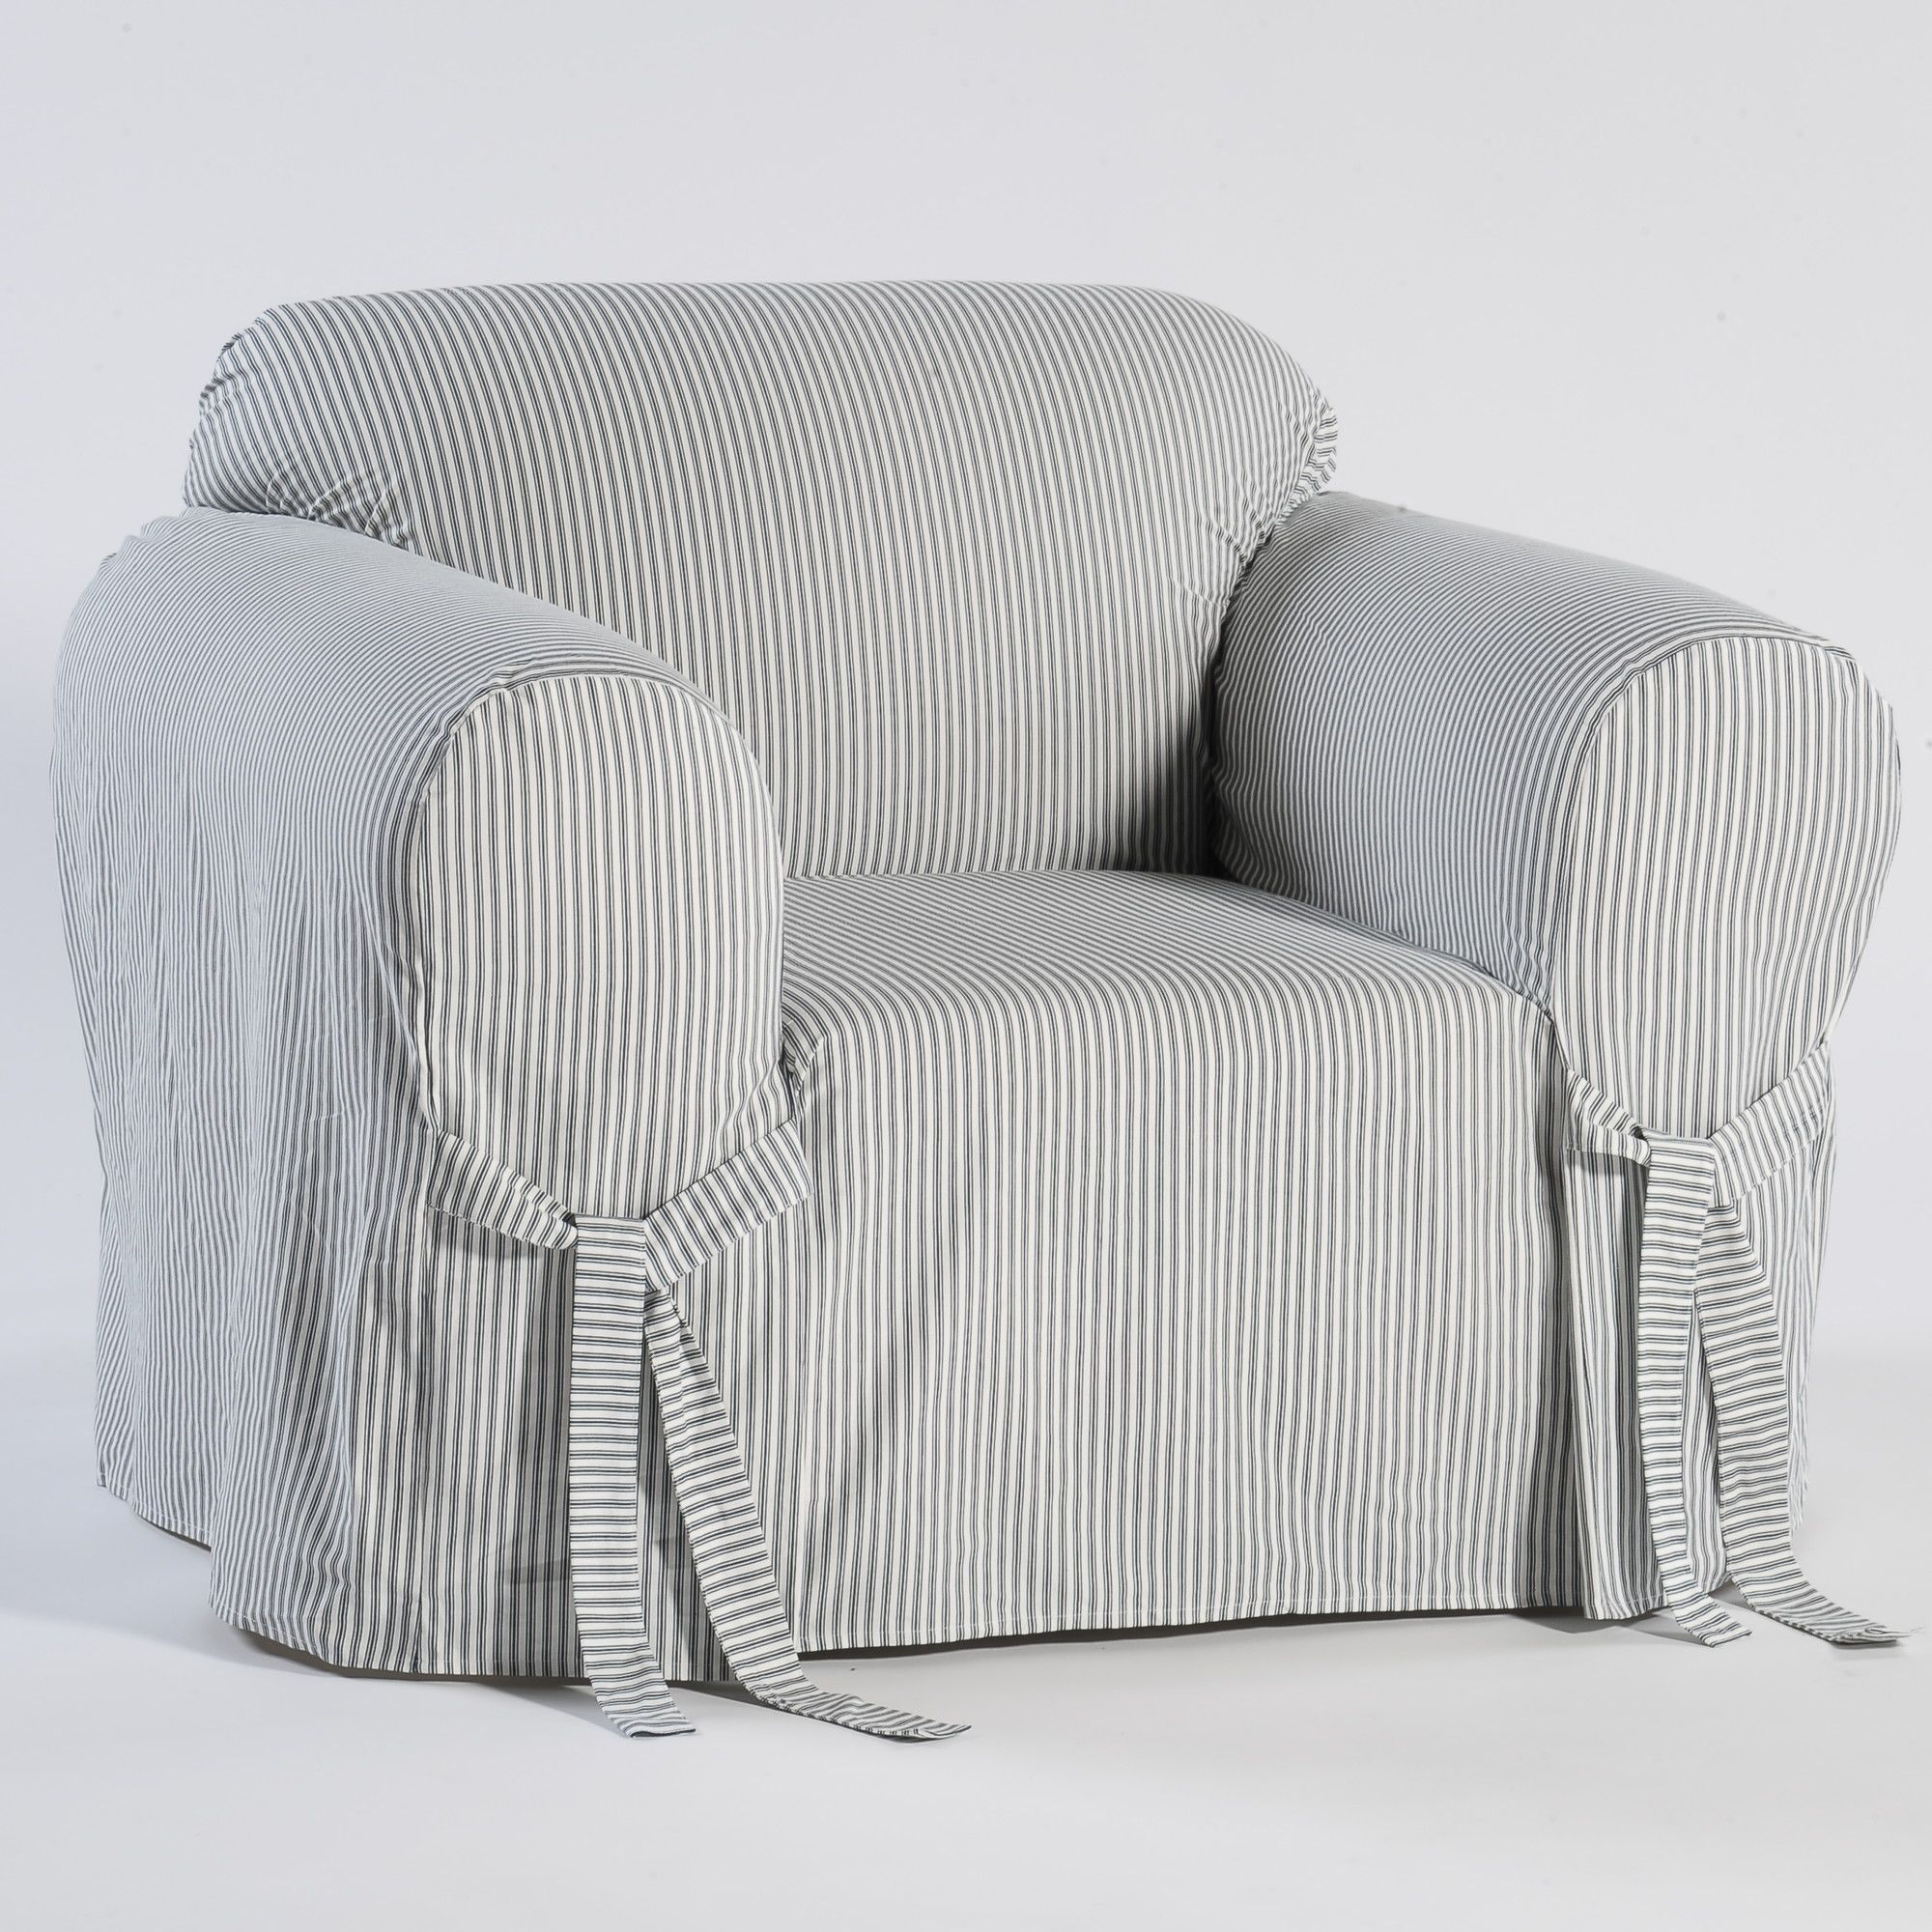 Shop Wayfair For Sofa Slipcovers To Match Every Style And Budget Enjoy Free Shipping On Most Stuff Even B With Images Armchair Slipcover Slipcovers For Chairs Slipcovers